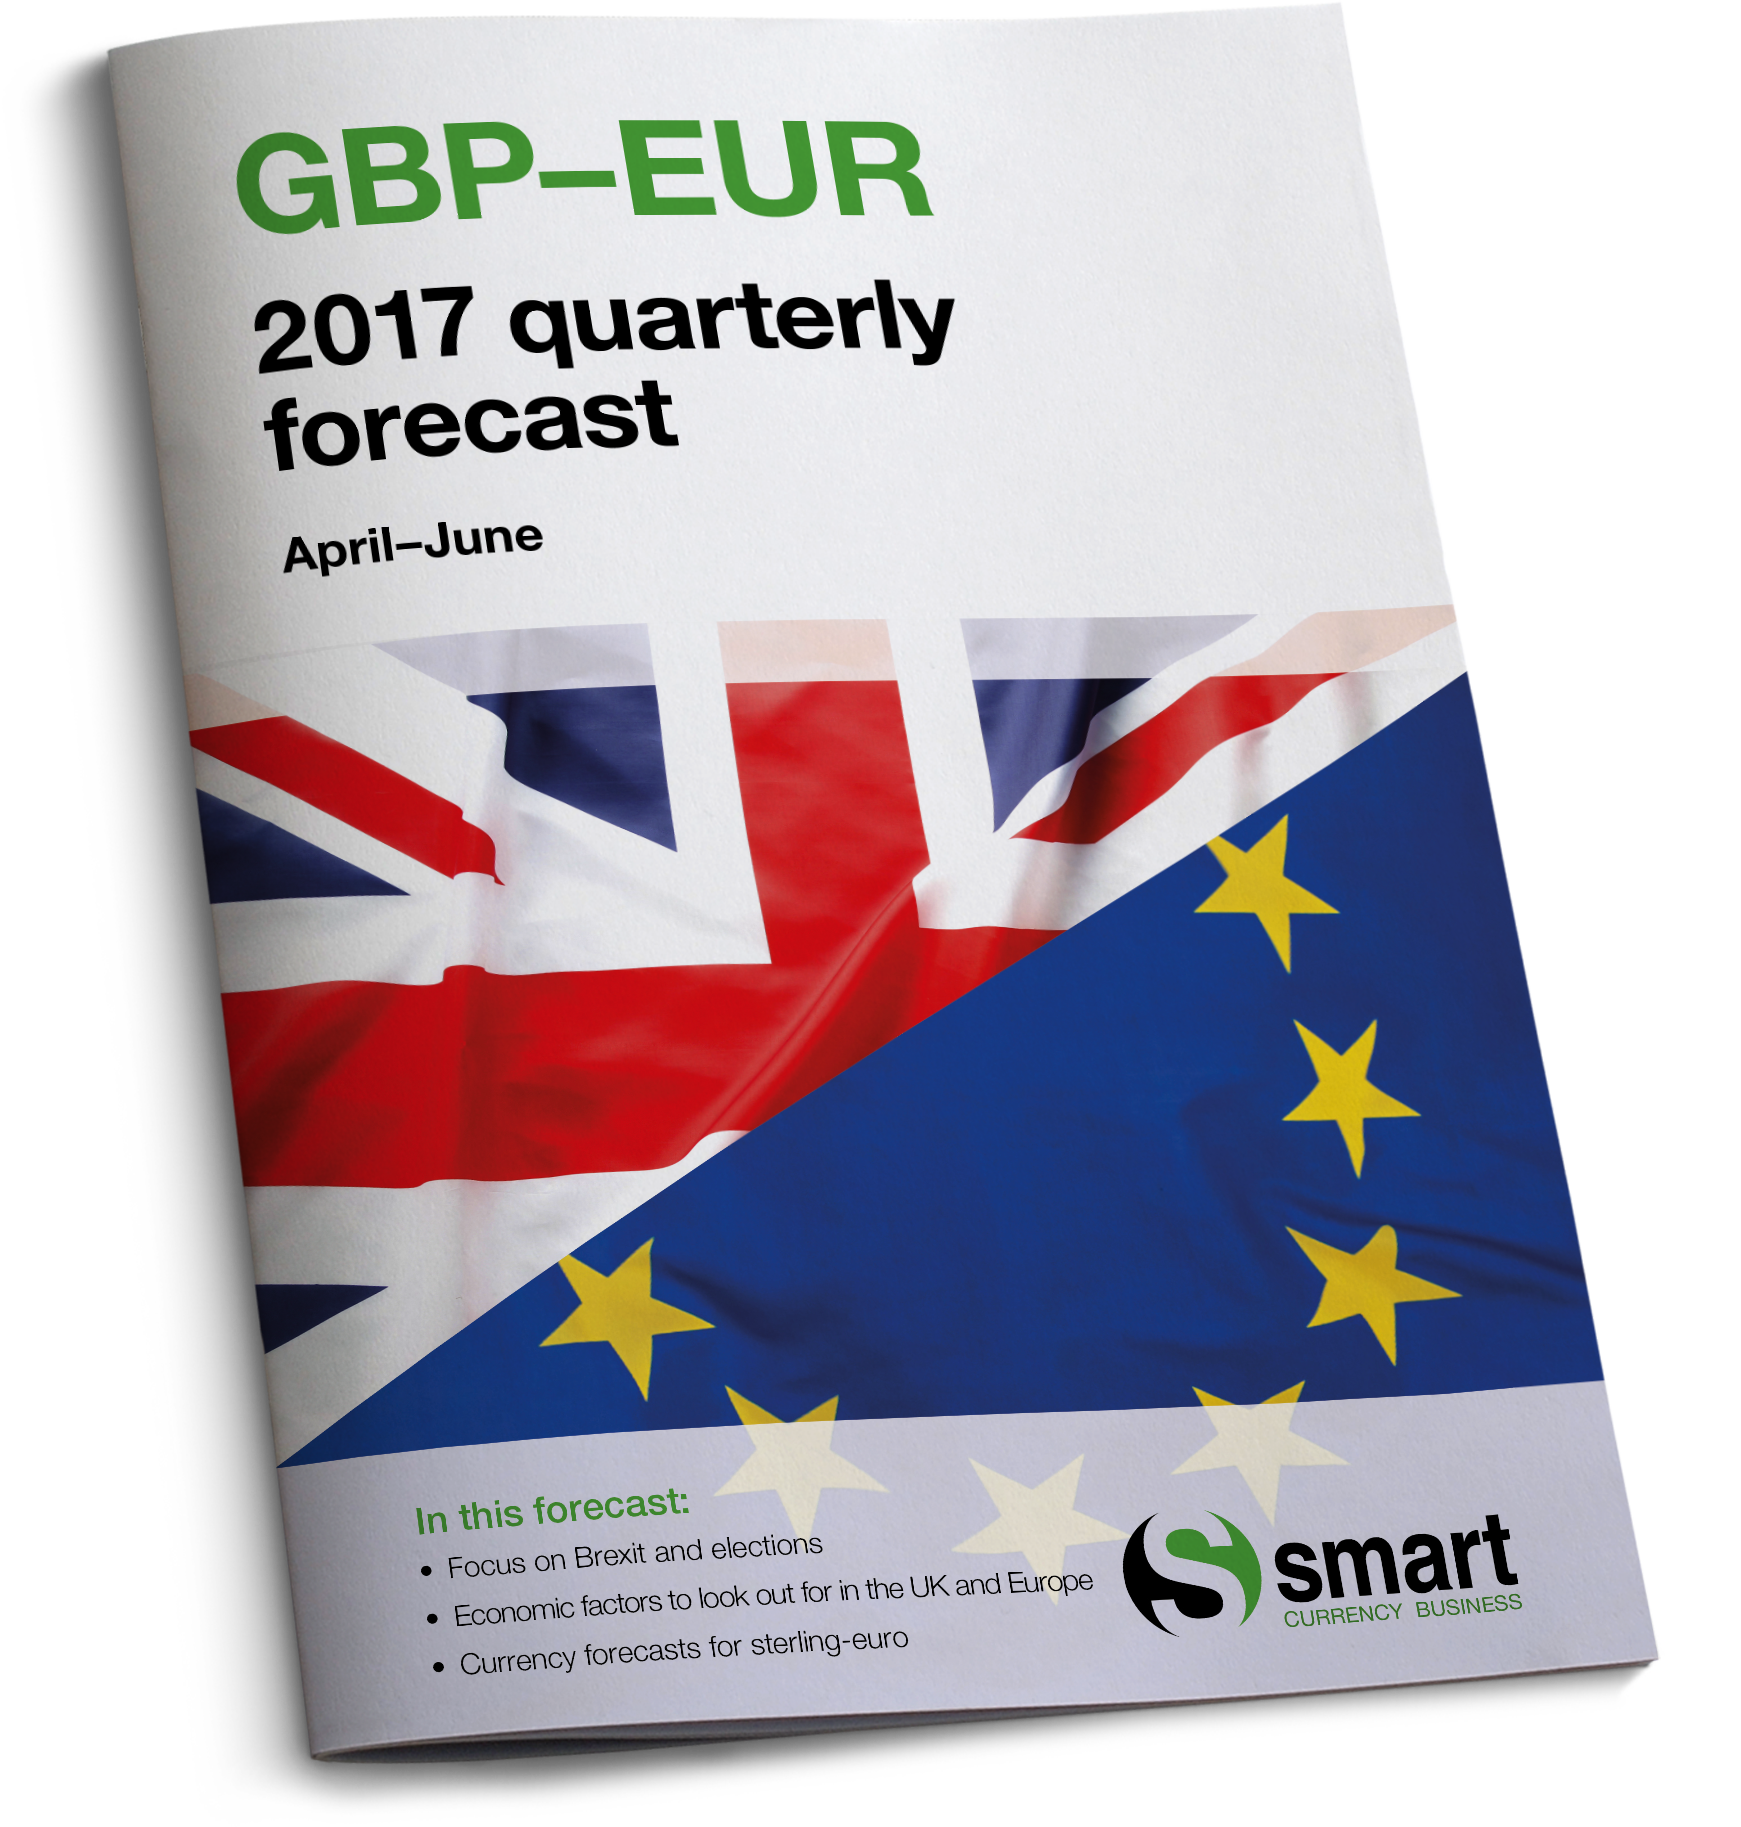 Sterling-euro forecast for April to June 2017